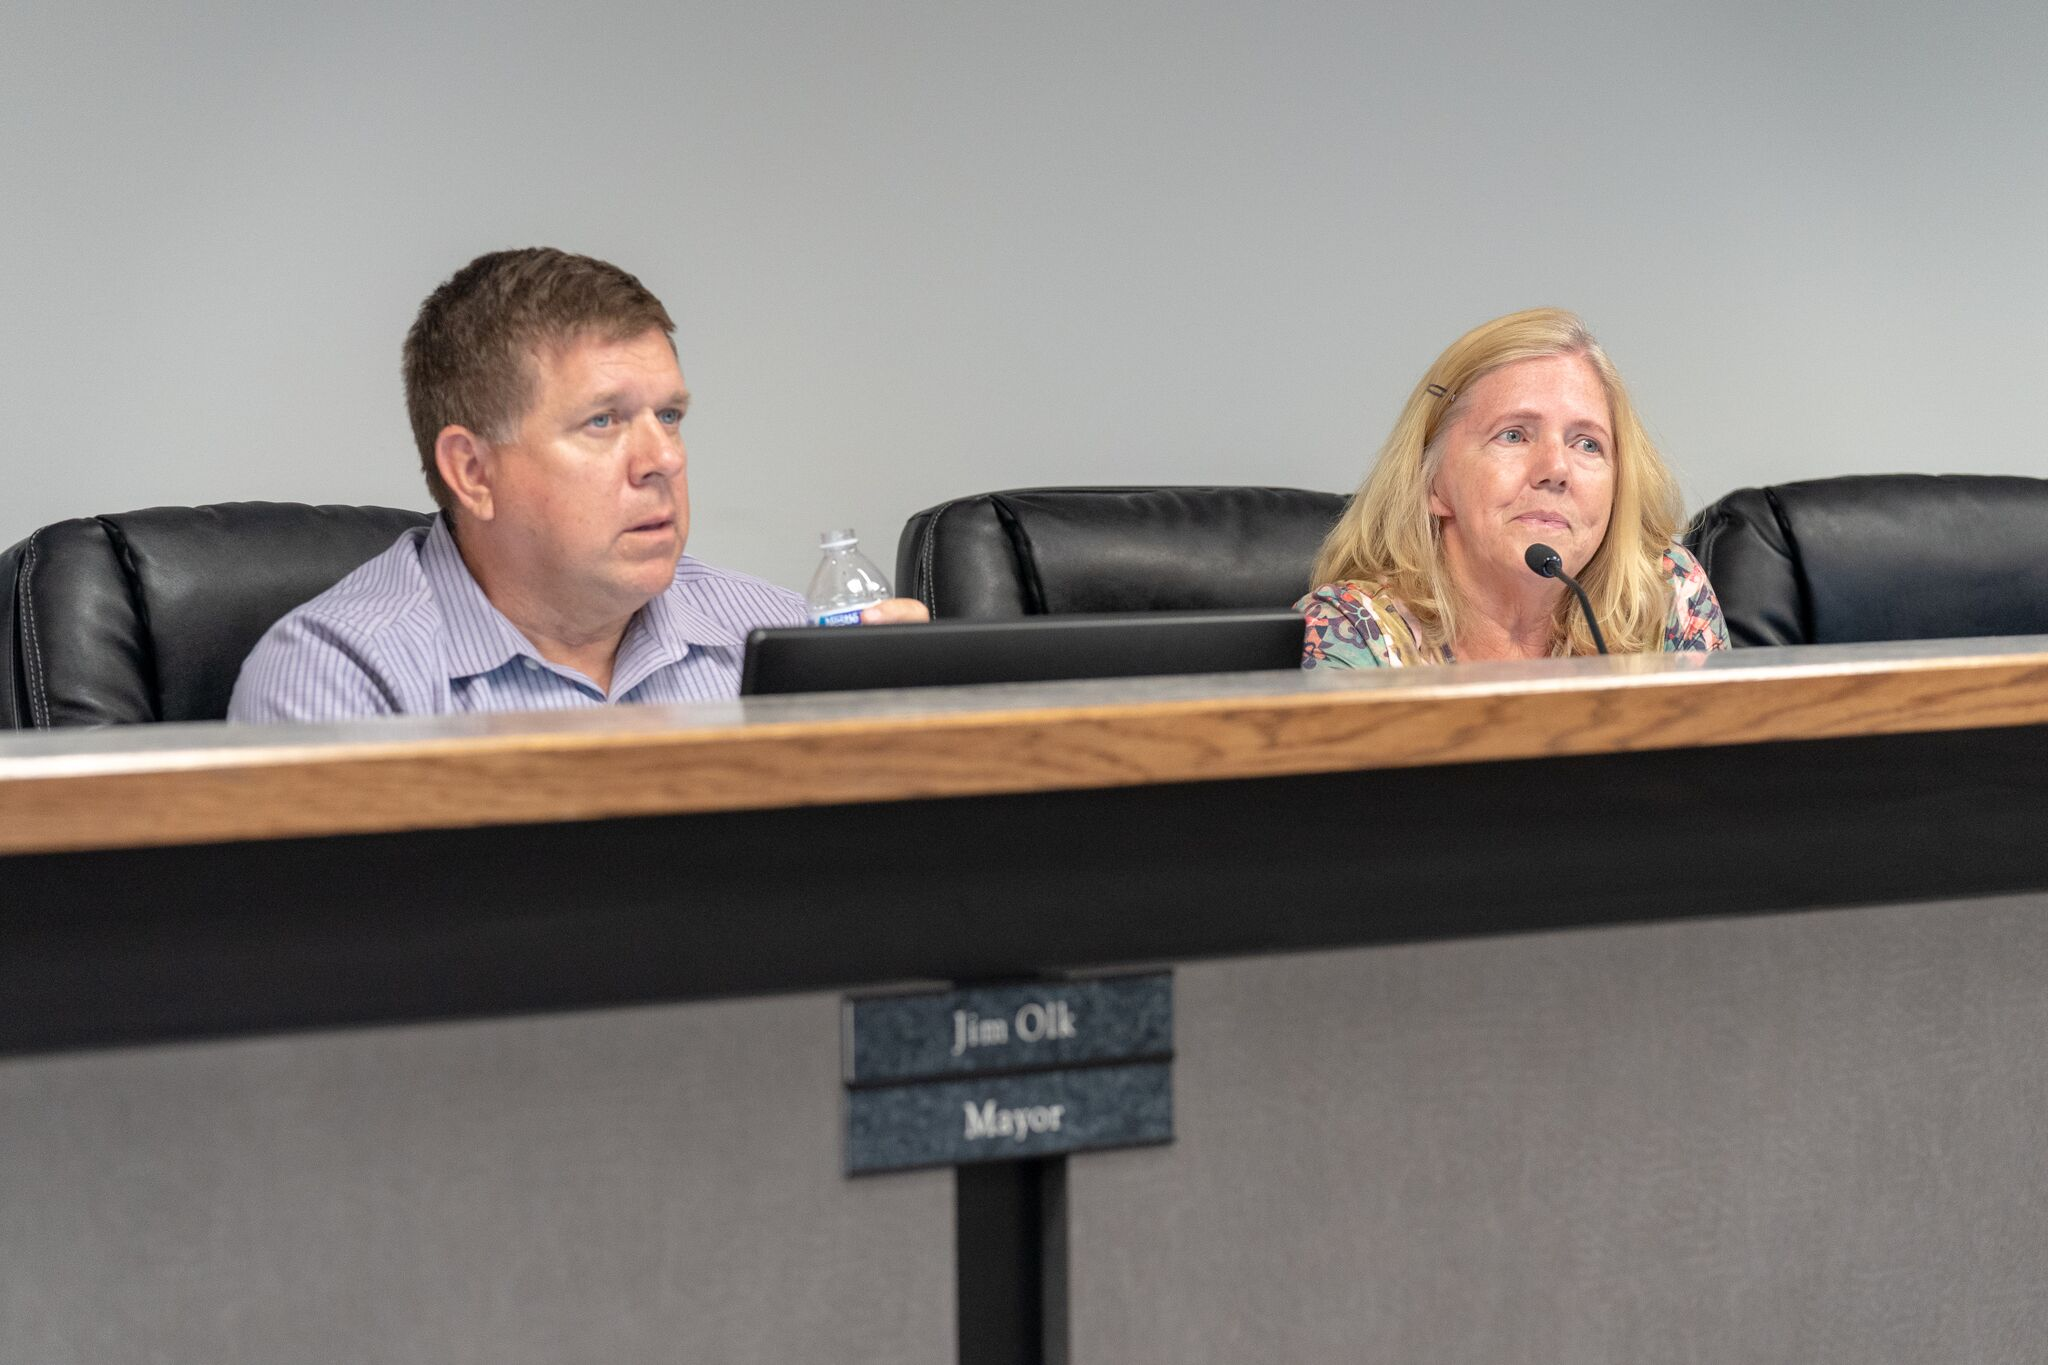 Mayor Jim Olk (L) and Mayor Pro Tem Kathleen Poole (R) explain that annexation allows Lucas to control important development issues.